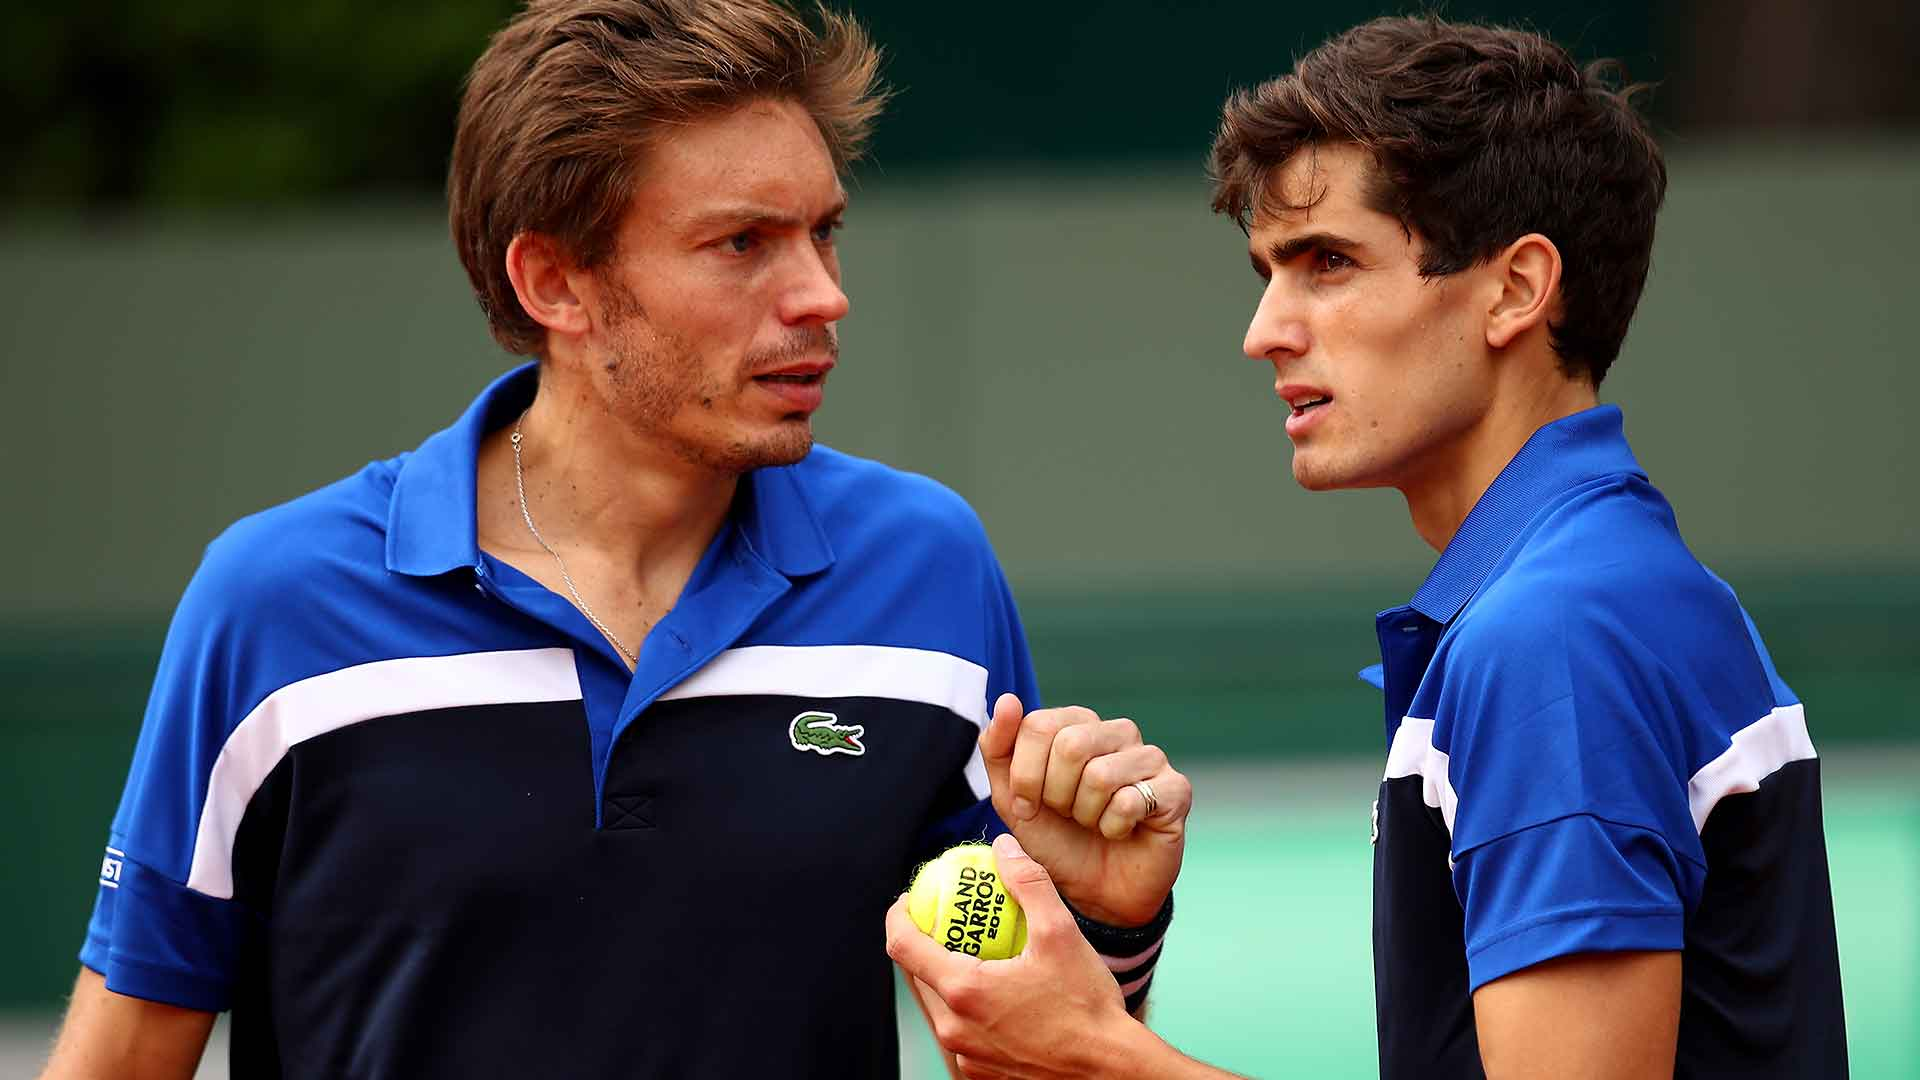 Nicolas Mahut and Pierre-Hugues Herbert are playing for their second Grand Slam doubles title.